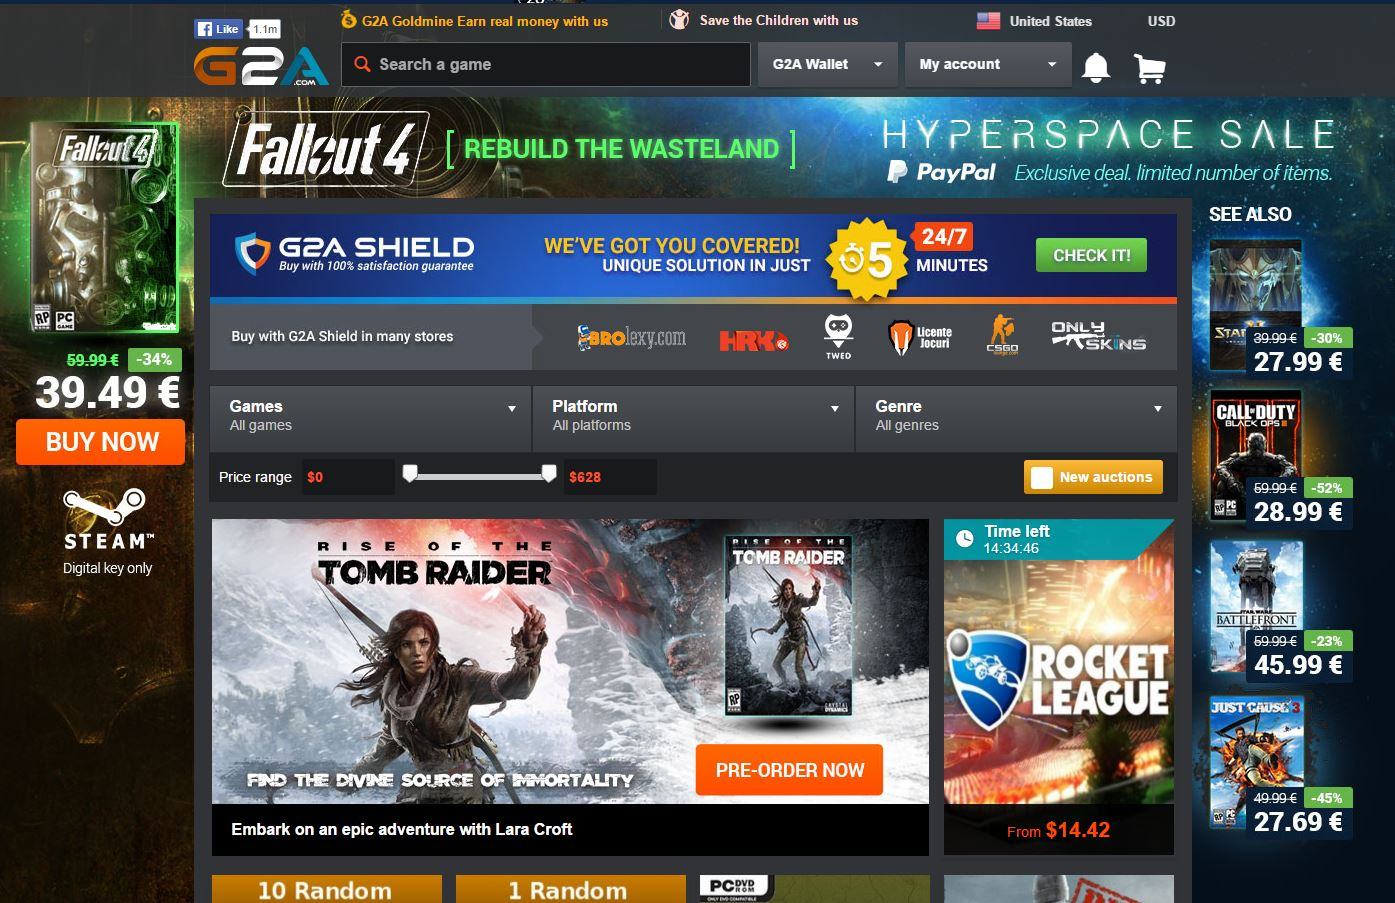 G2A coupons Get the latest G2A discount code now (click here)